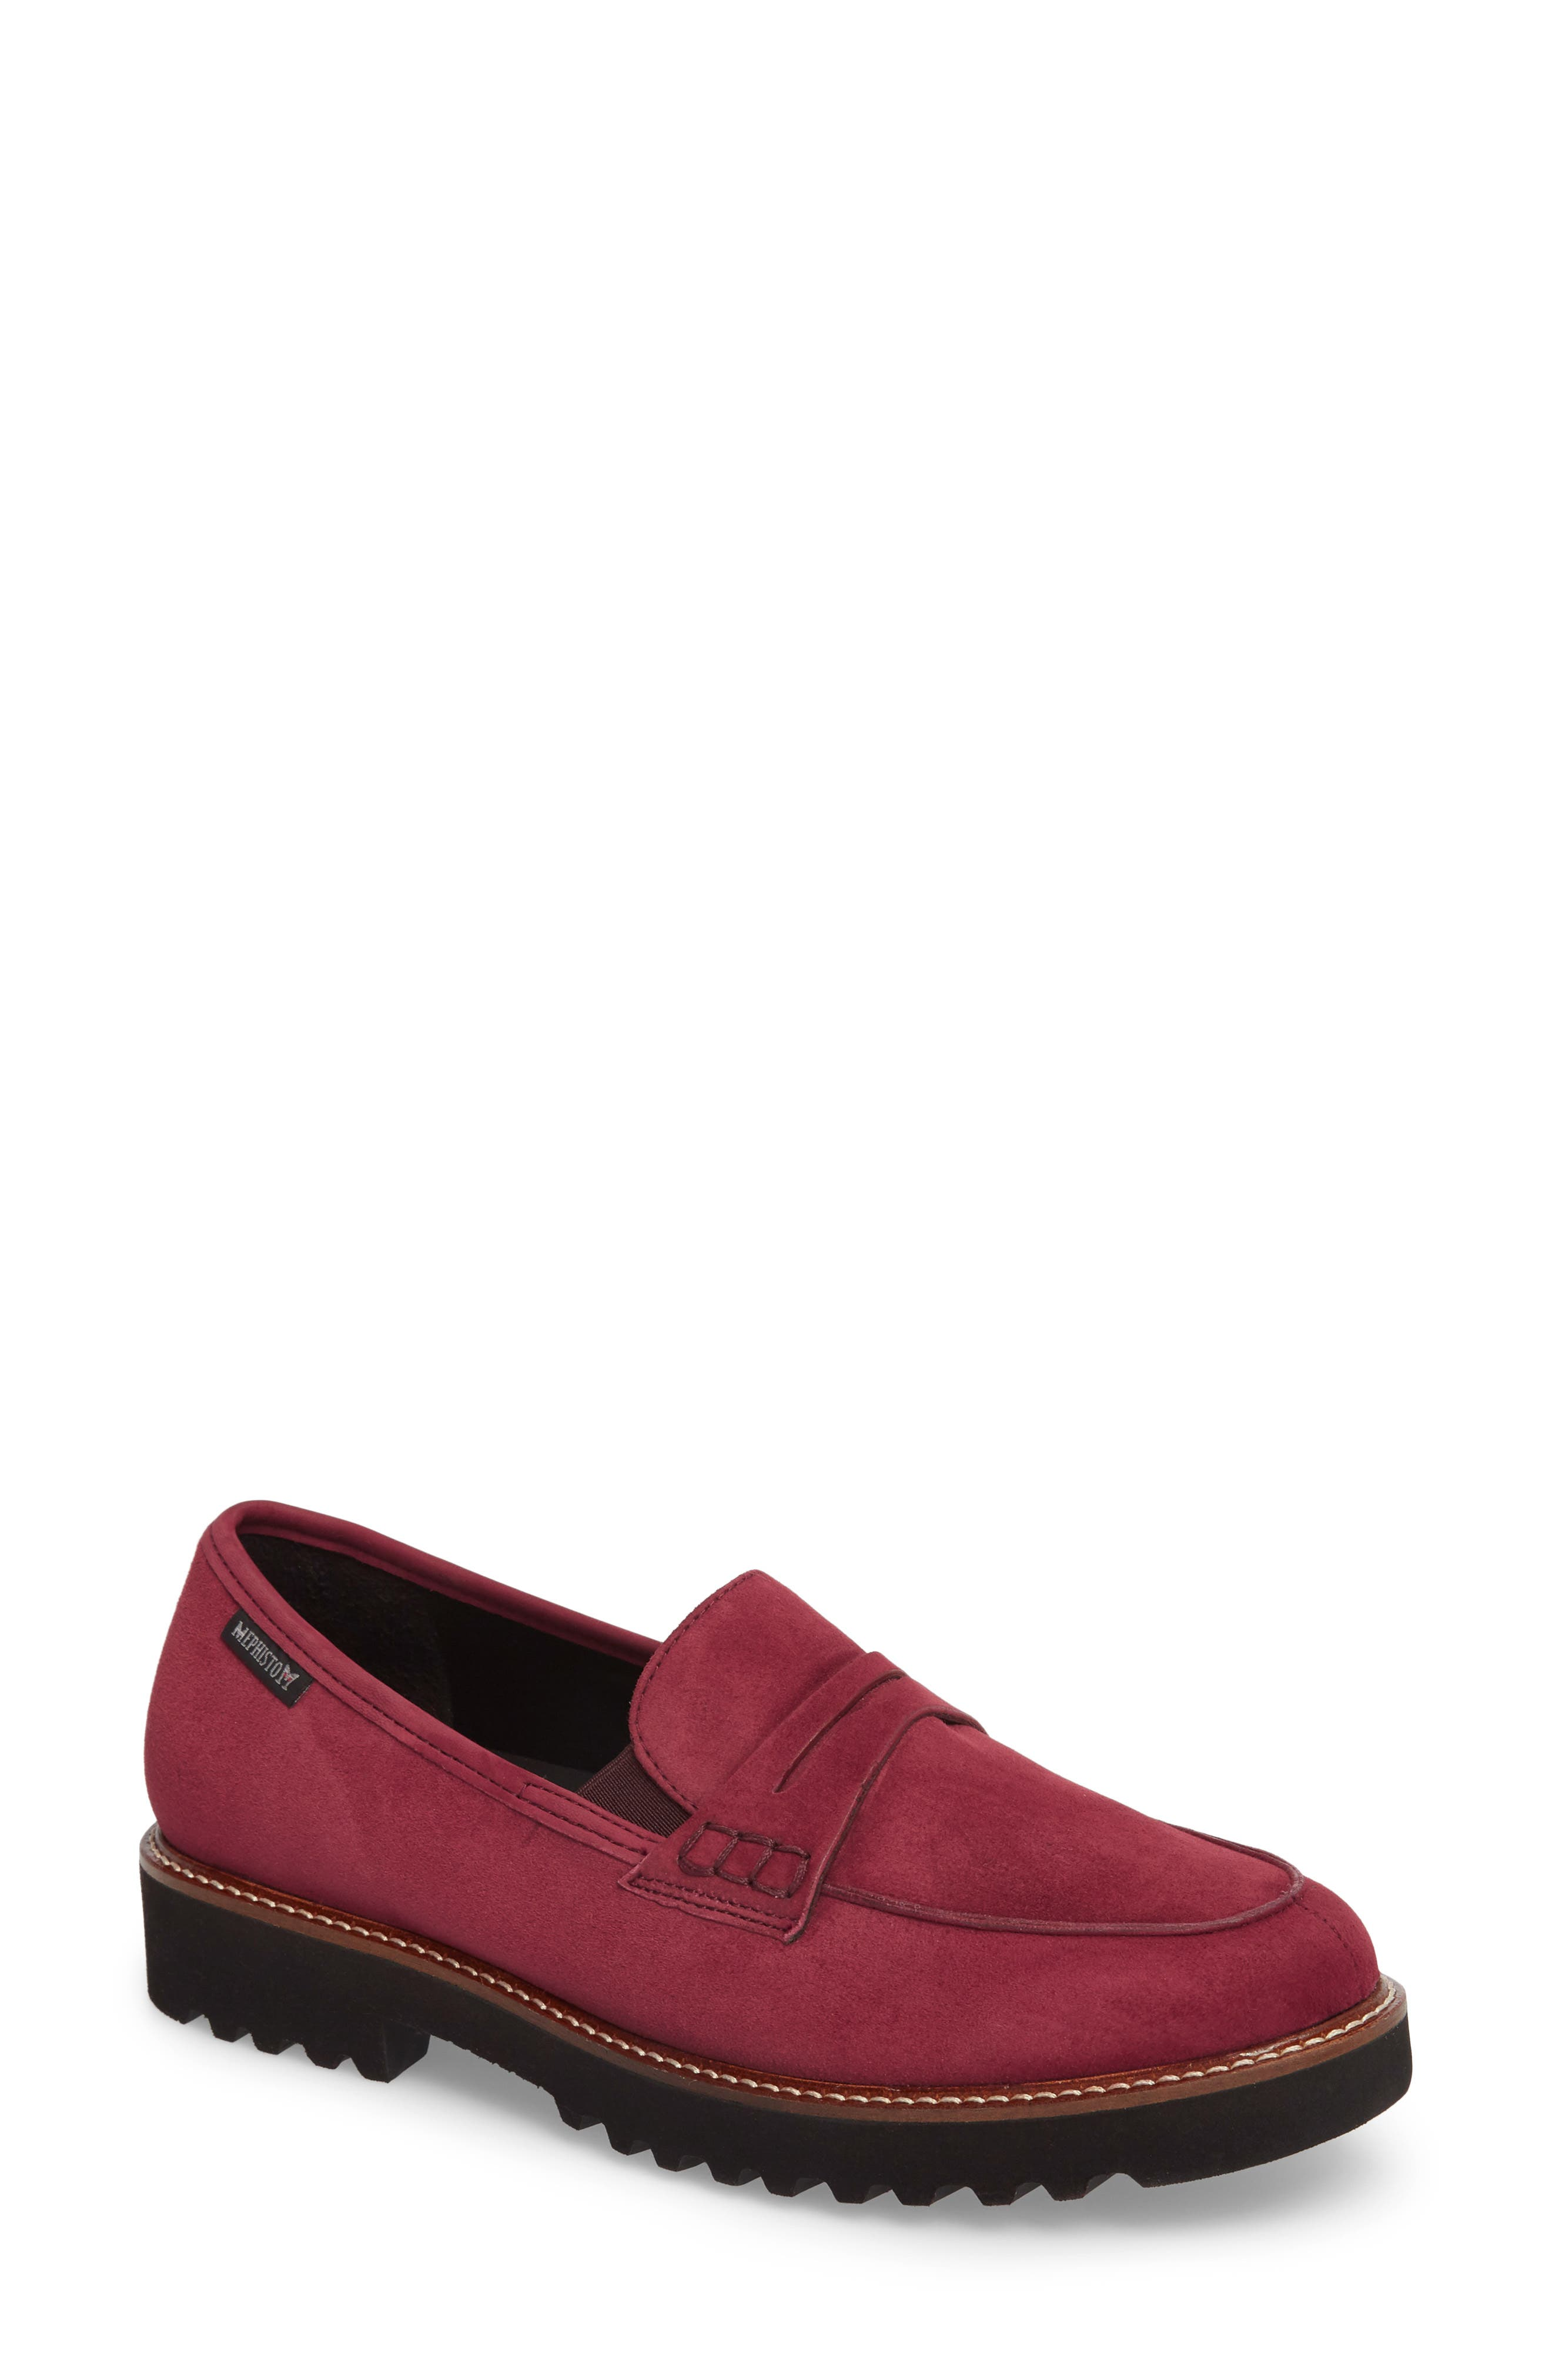 Mephisto Sidney Penny Loafer, Red